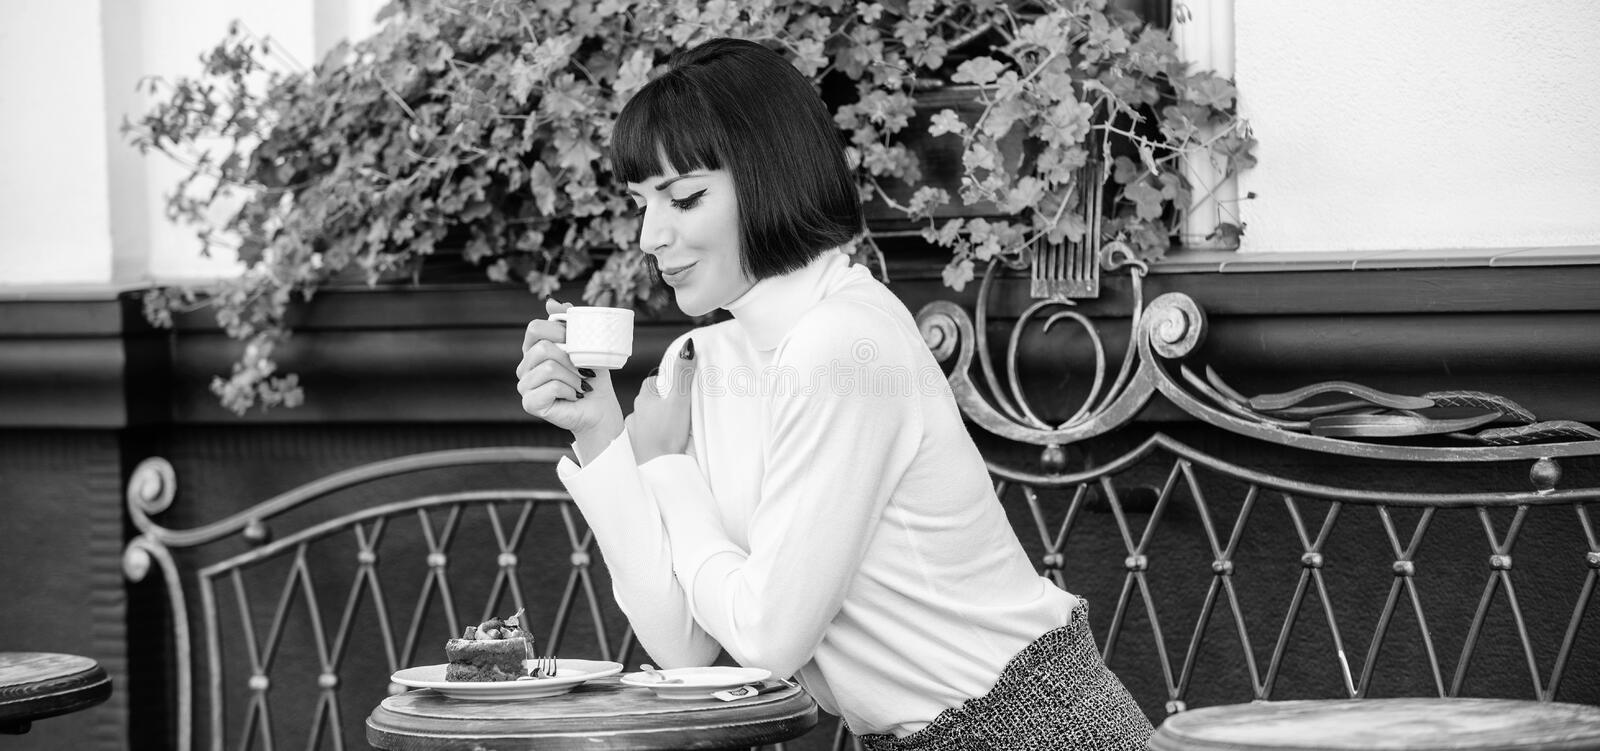 Gourmet concept. Pleasant time and relaxation. Delicious and gourmet drink. Girl relax cafe with coffee and dessert. Woman attractive elegant brunette enjoy royalty free stock images